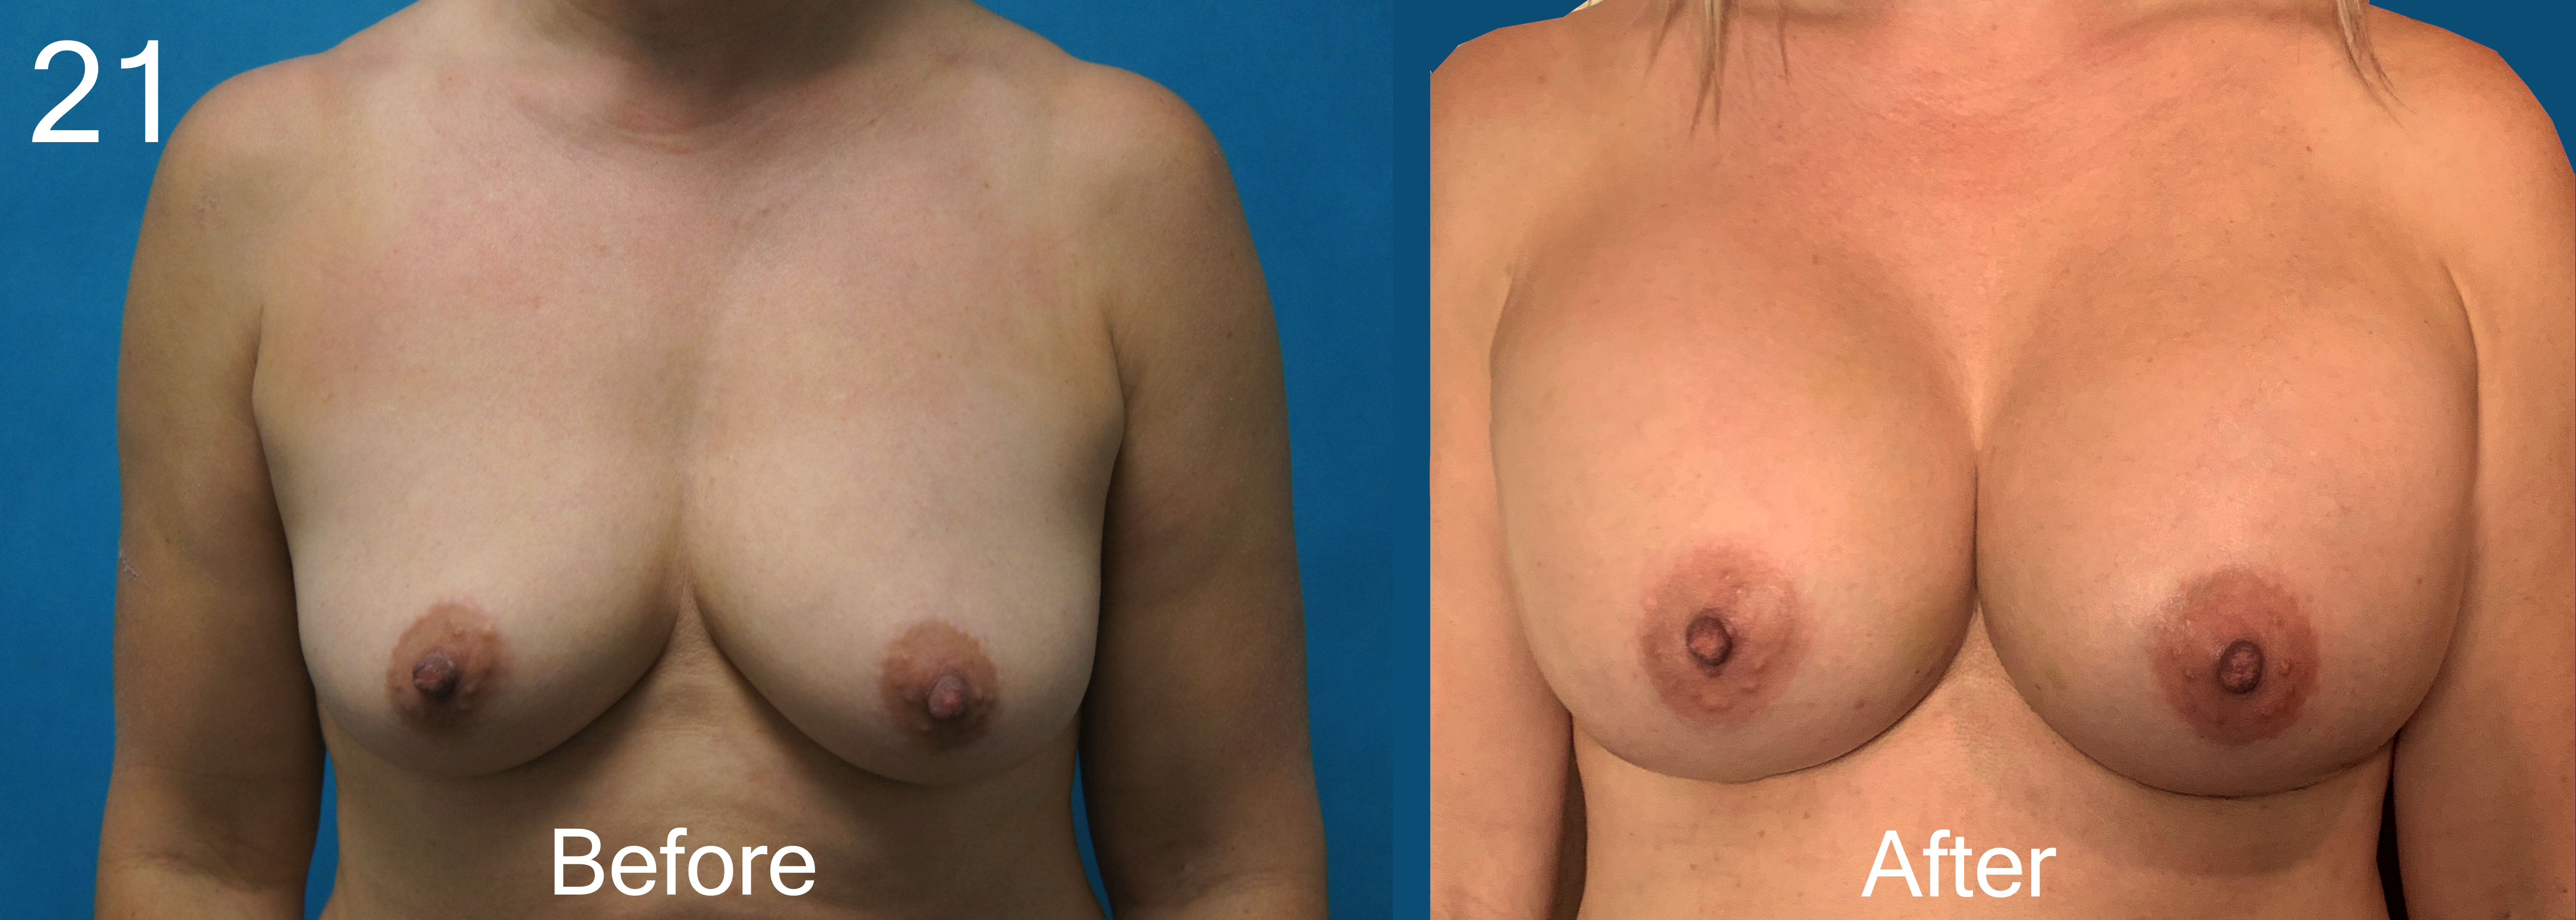 Breast Augmentation Larry A Sargent, MDD